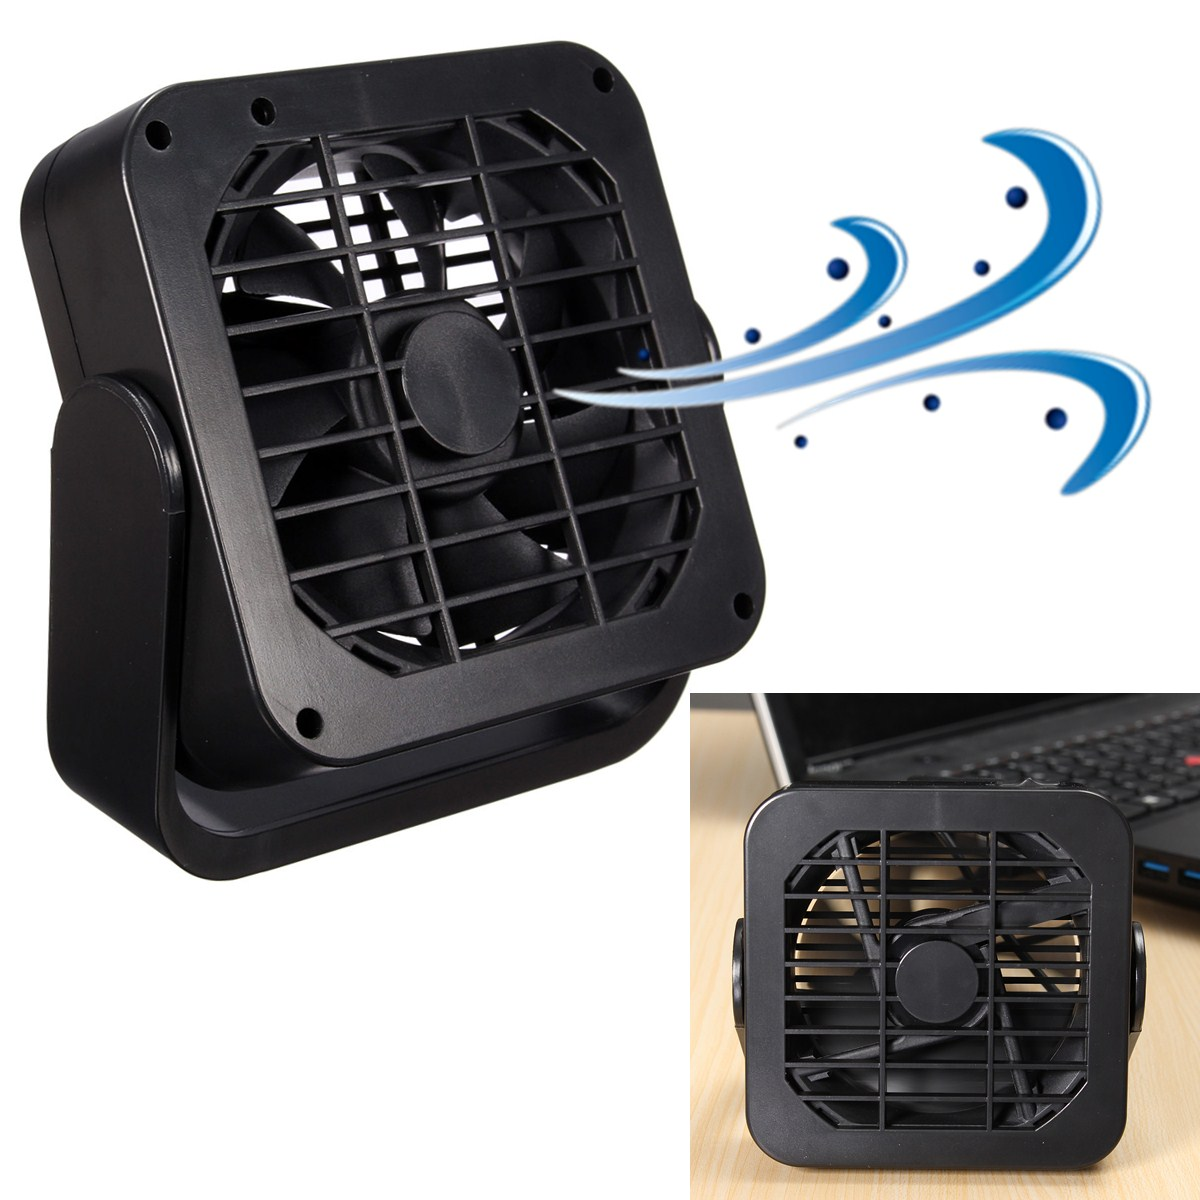 360 magn tique mini usb fan refroidisseur ventilateur. Black Bedroom Furniture Sets. Home Design Ideas